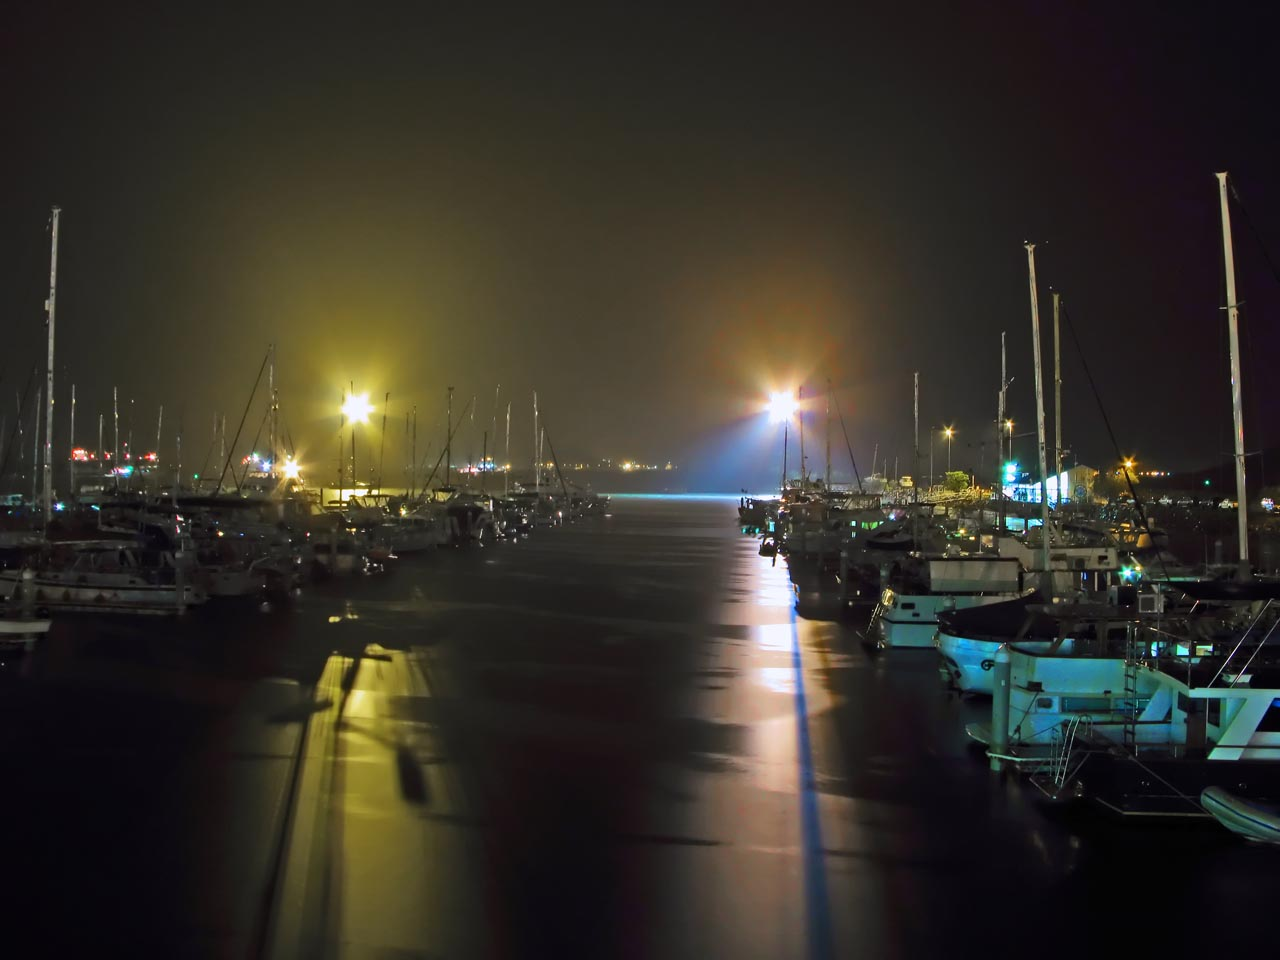 Port Moresby Royal Yacht Club on a rainy night